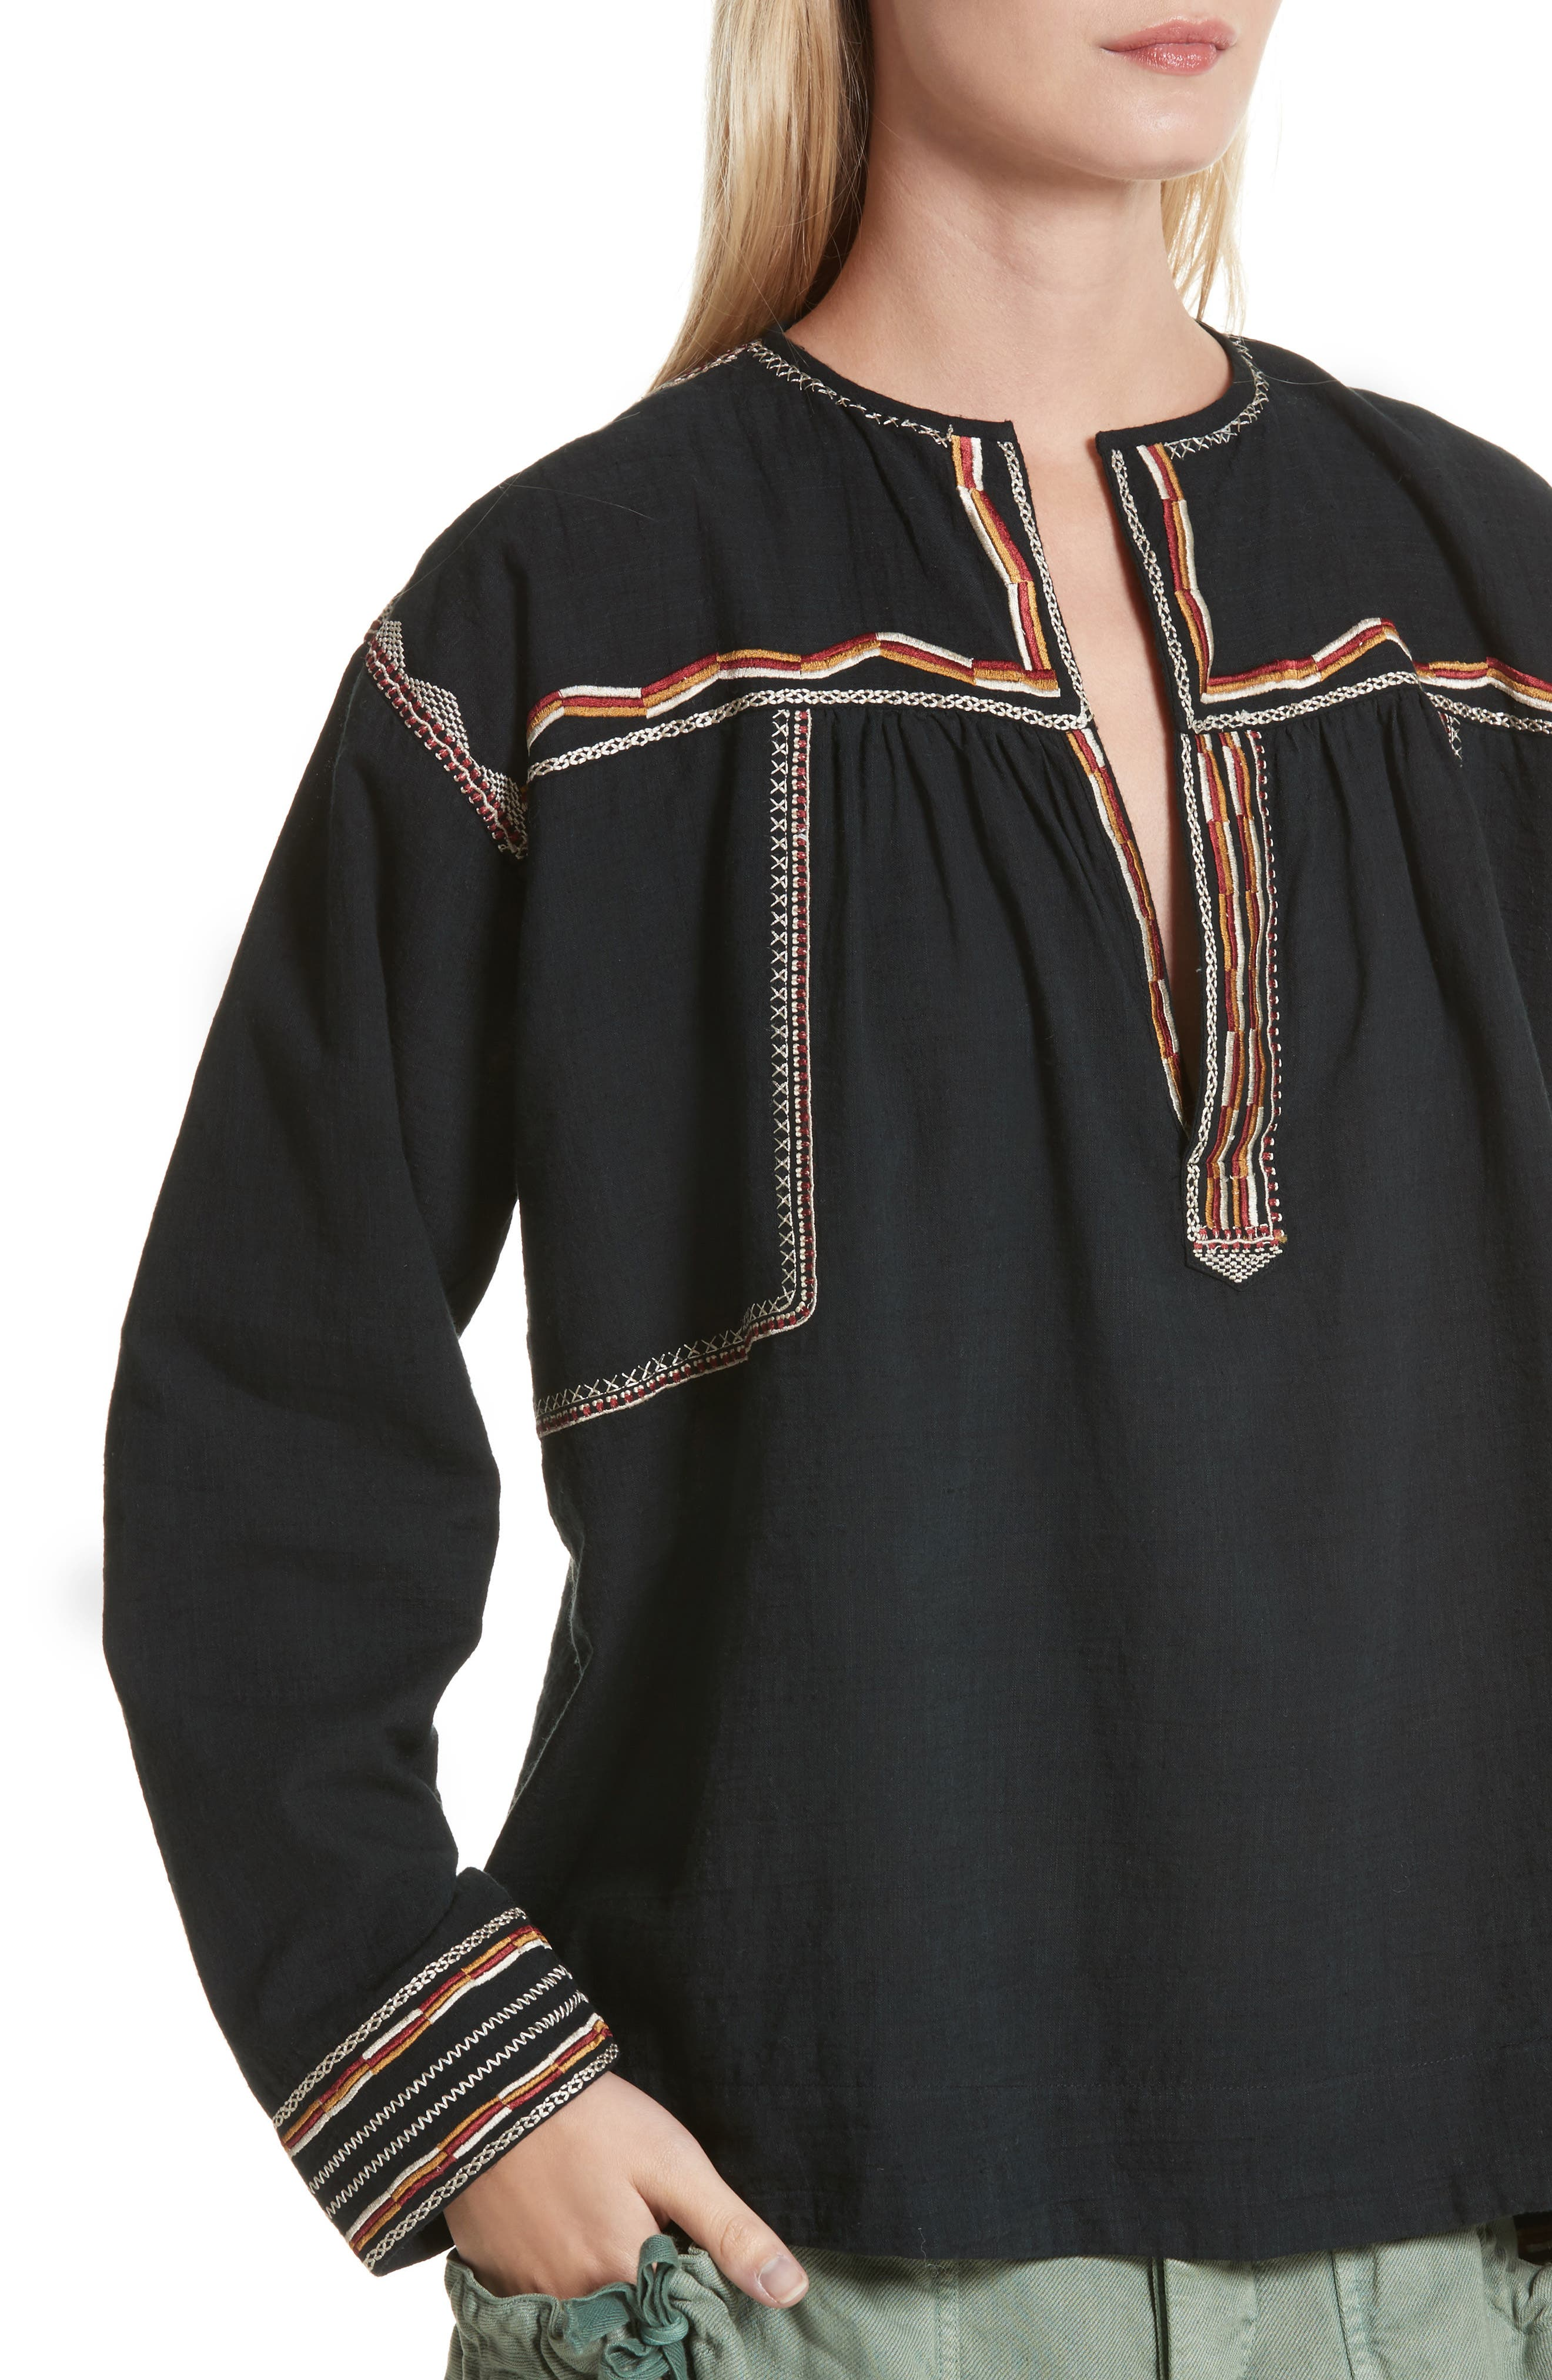 Isabel Marant Étoile Blicky Embroidered Top,                             Alternate thumbnail 4, color,                             001